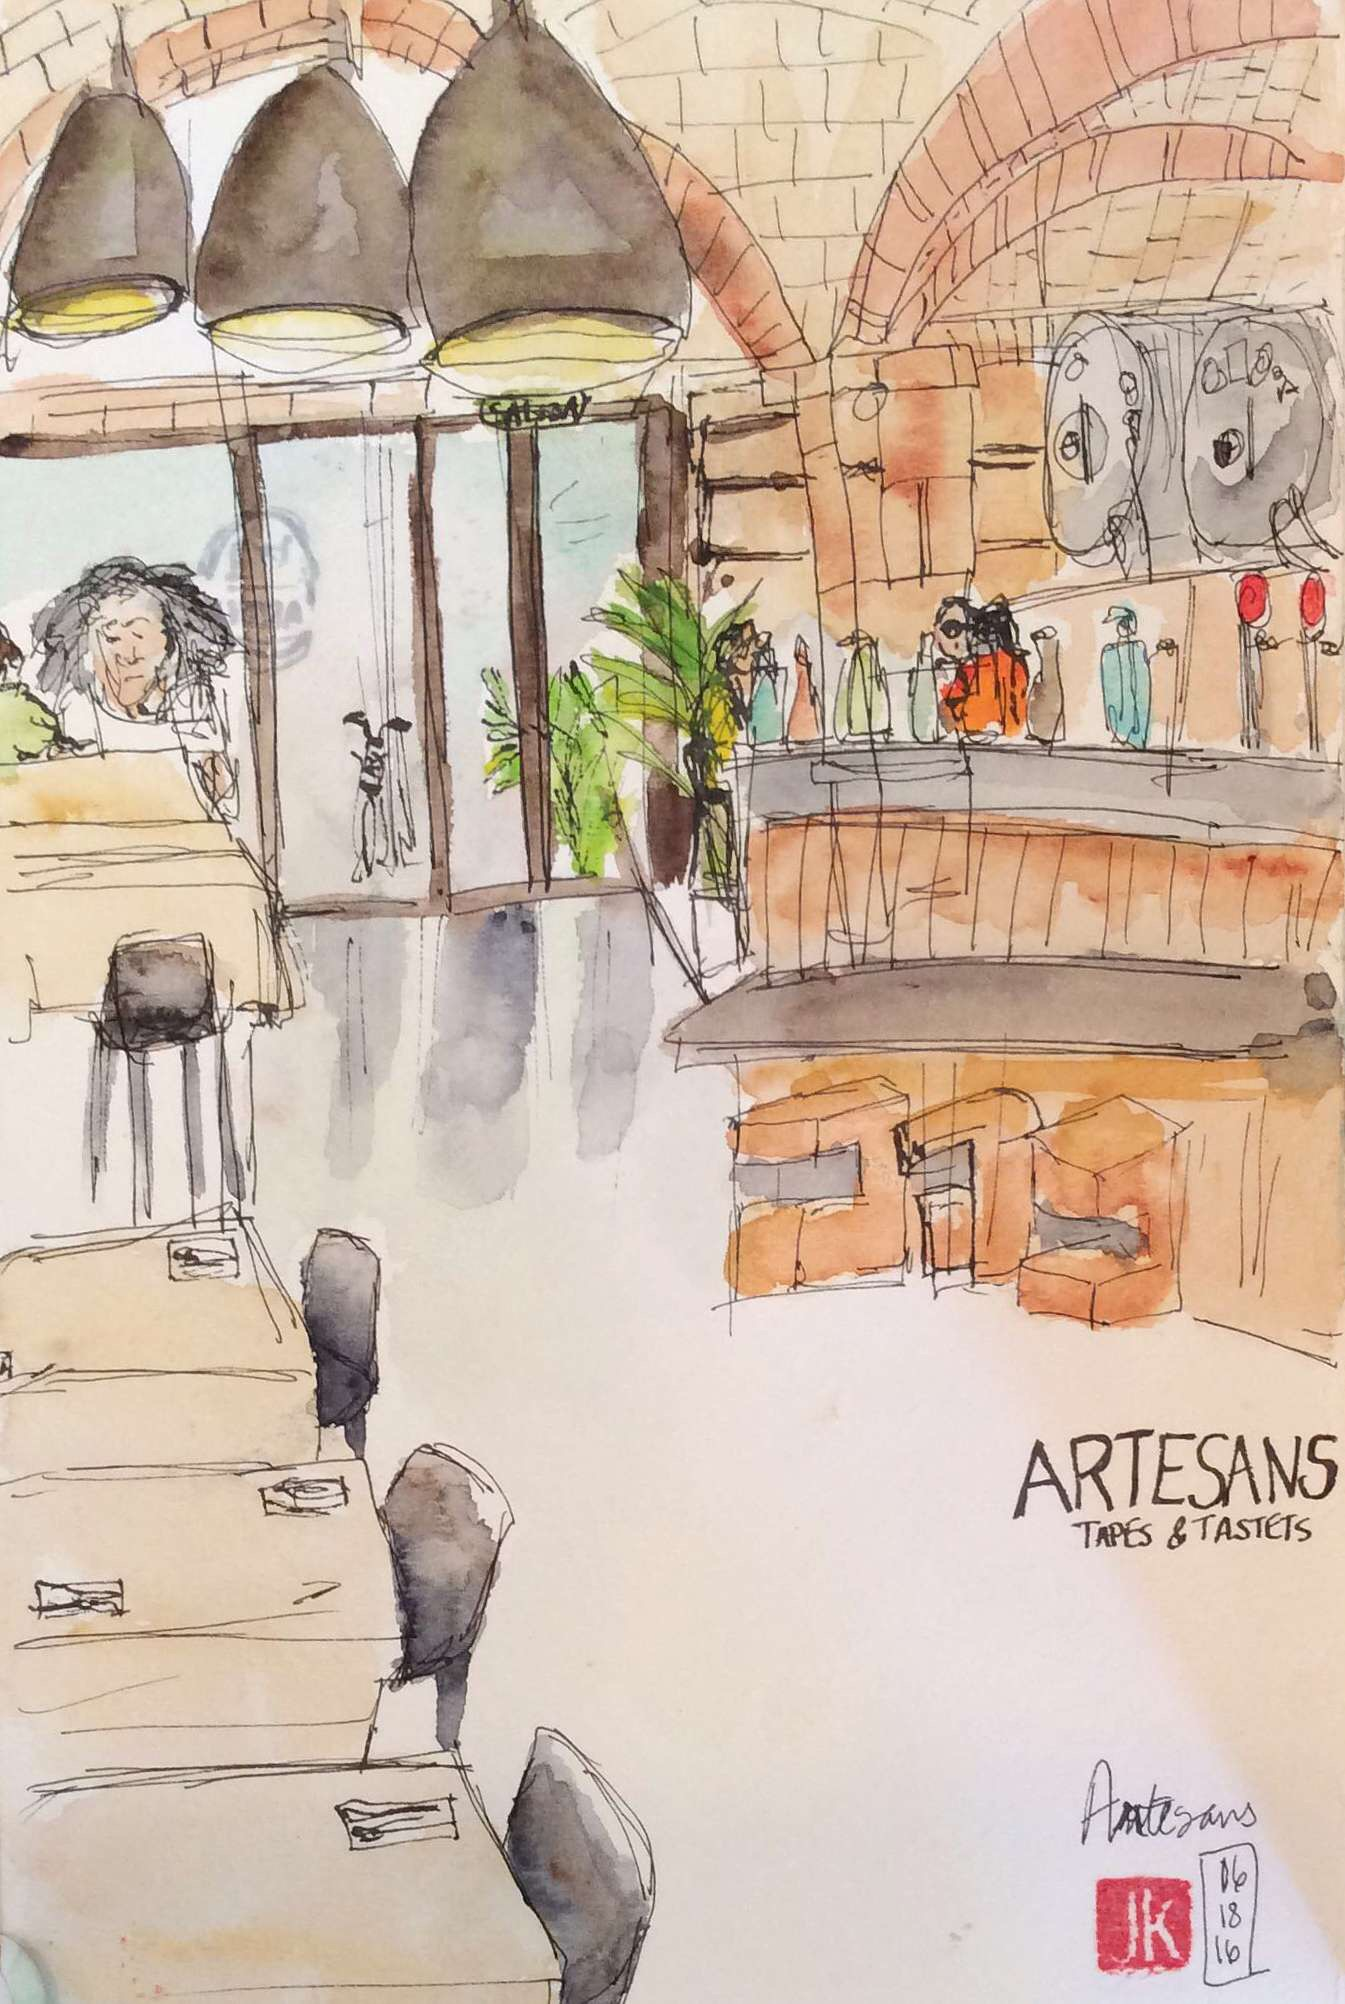 Our last meal in Barcelona - tapas at Artesans in El Born